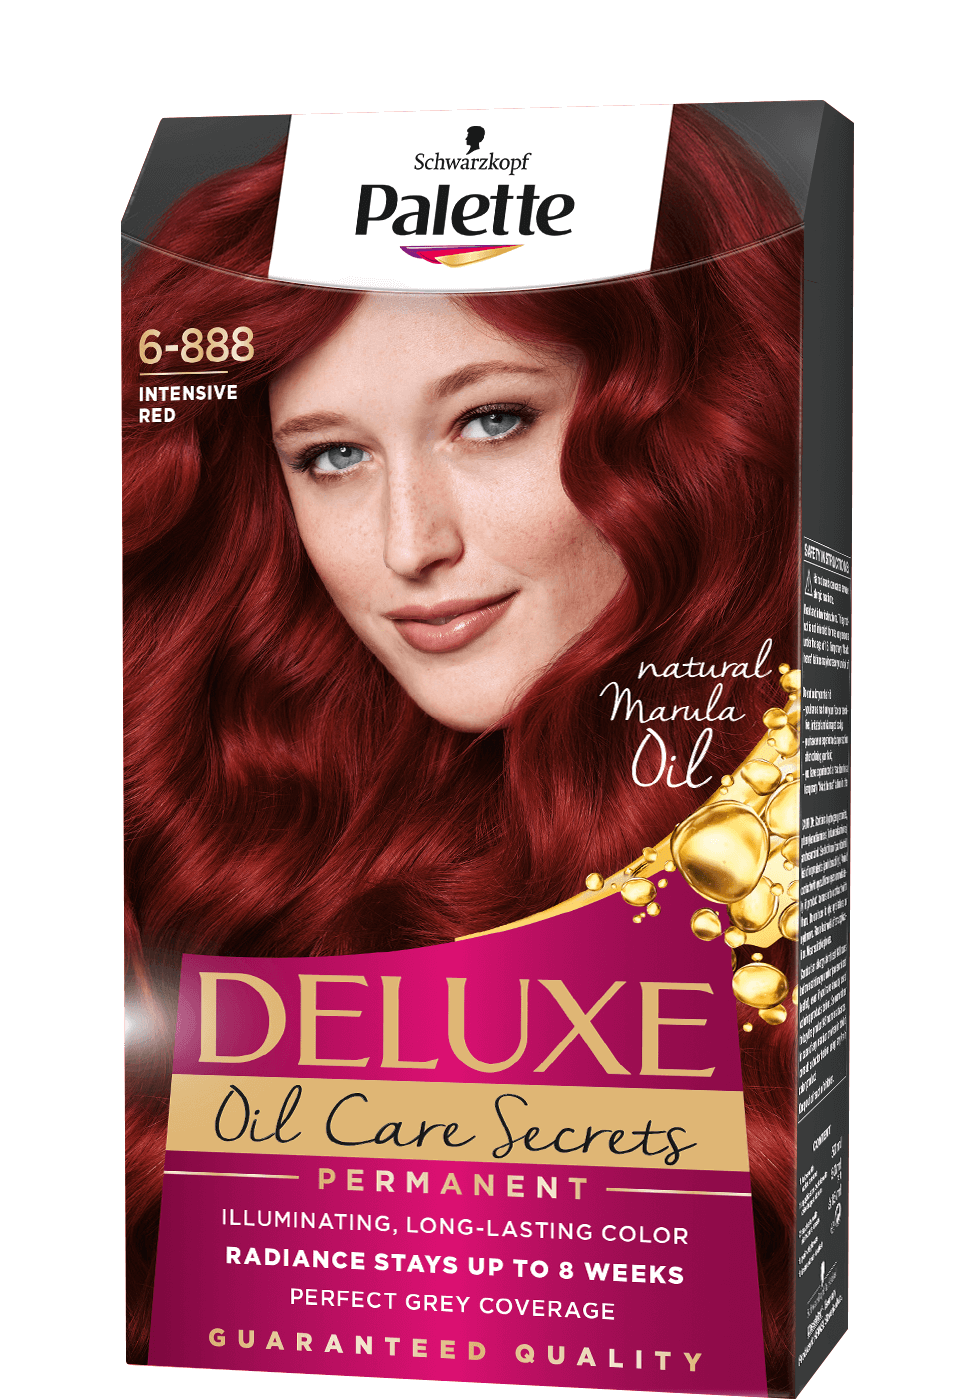 palette_com_oil_care_secrets_6_888_intensive_red_970x1400